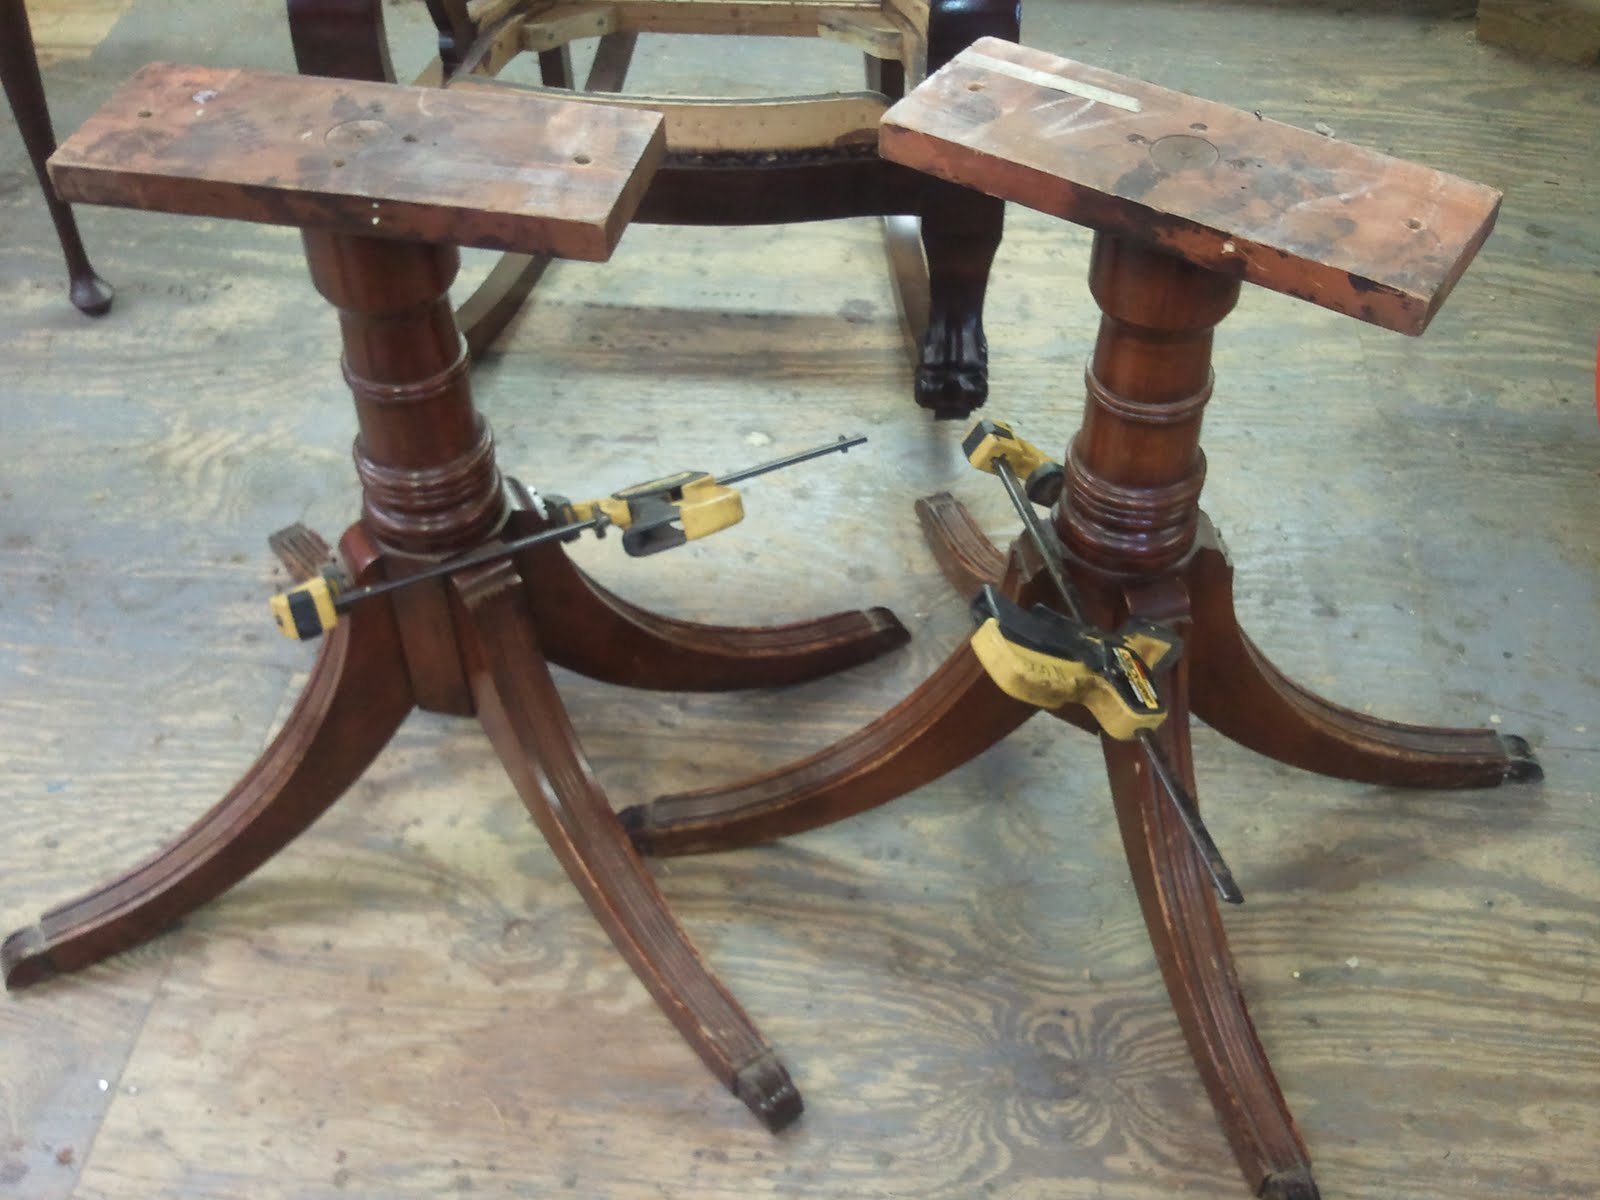 Antique Dining Chair Leg Styles Large Recliner John Mark Power Antiques Conservator Duncan Phyfe Style